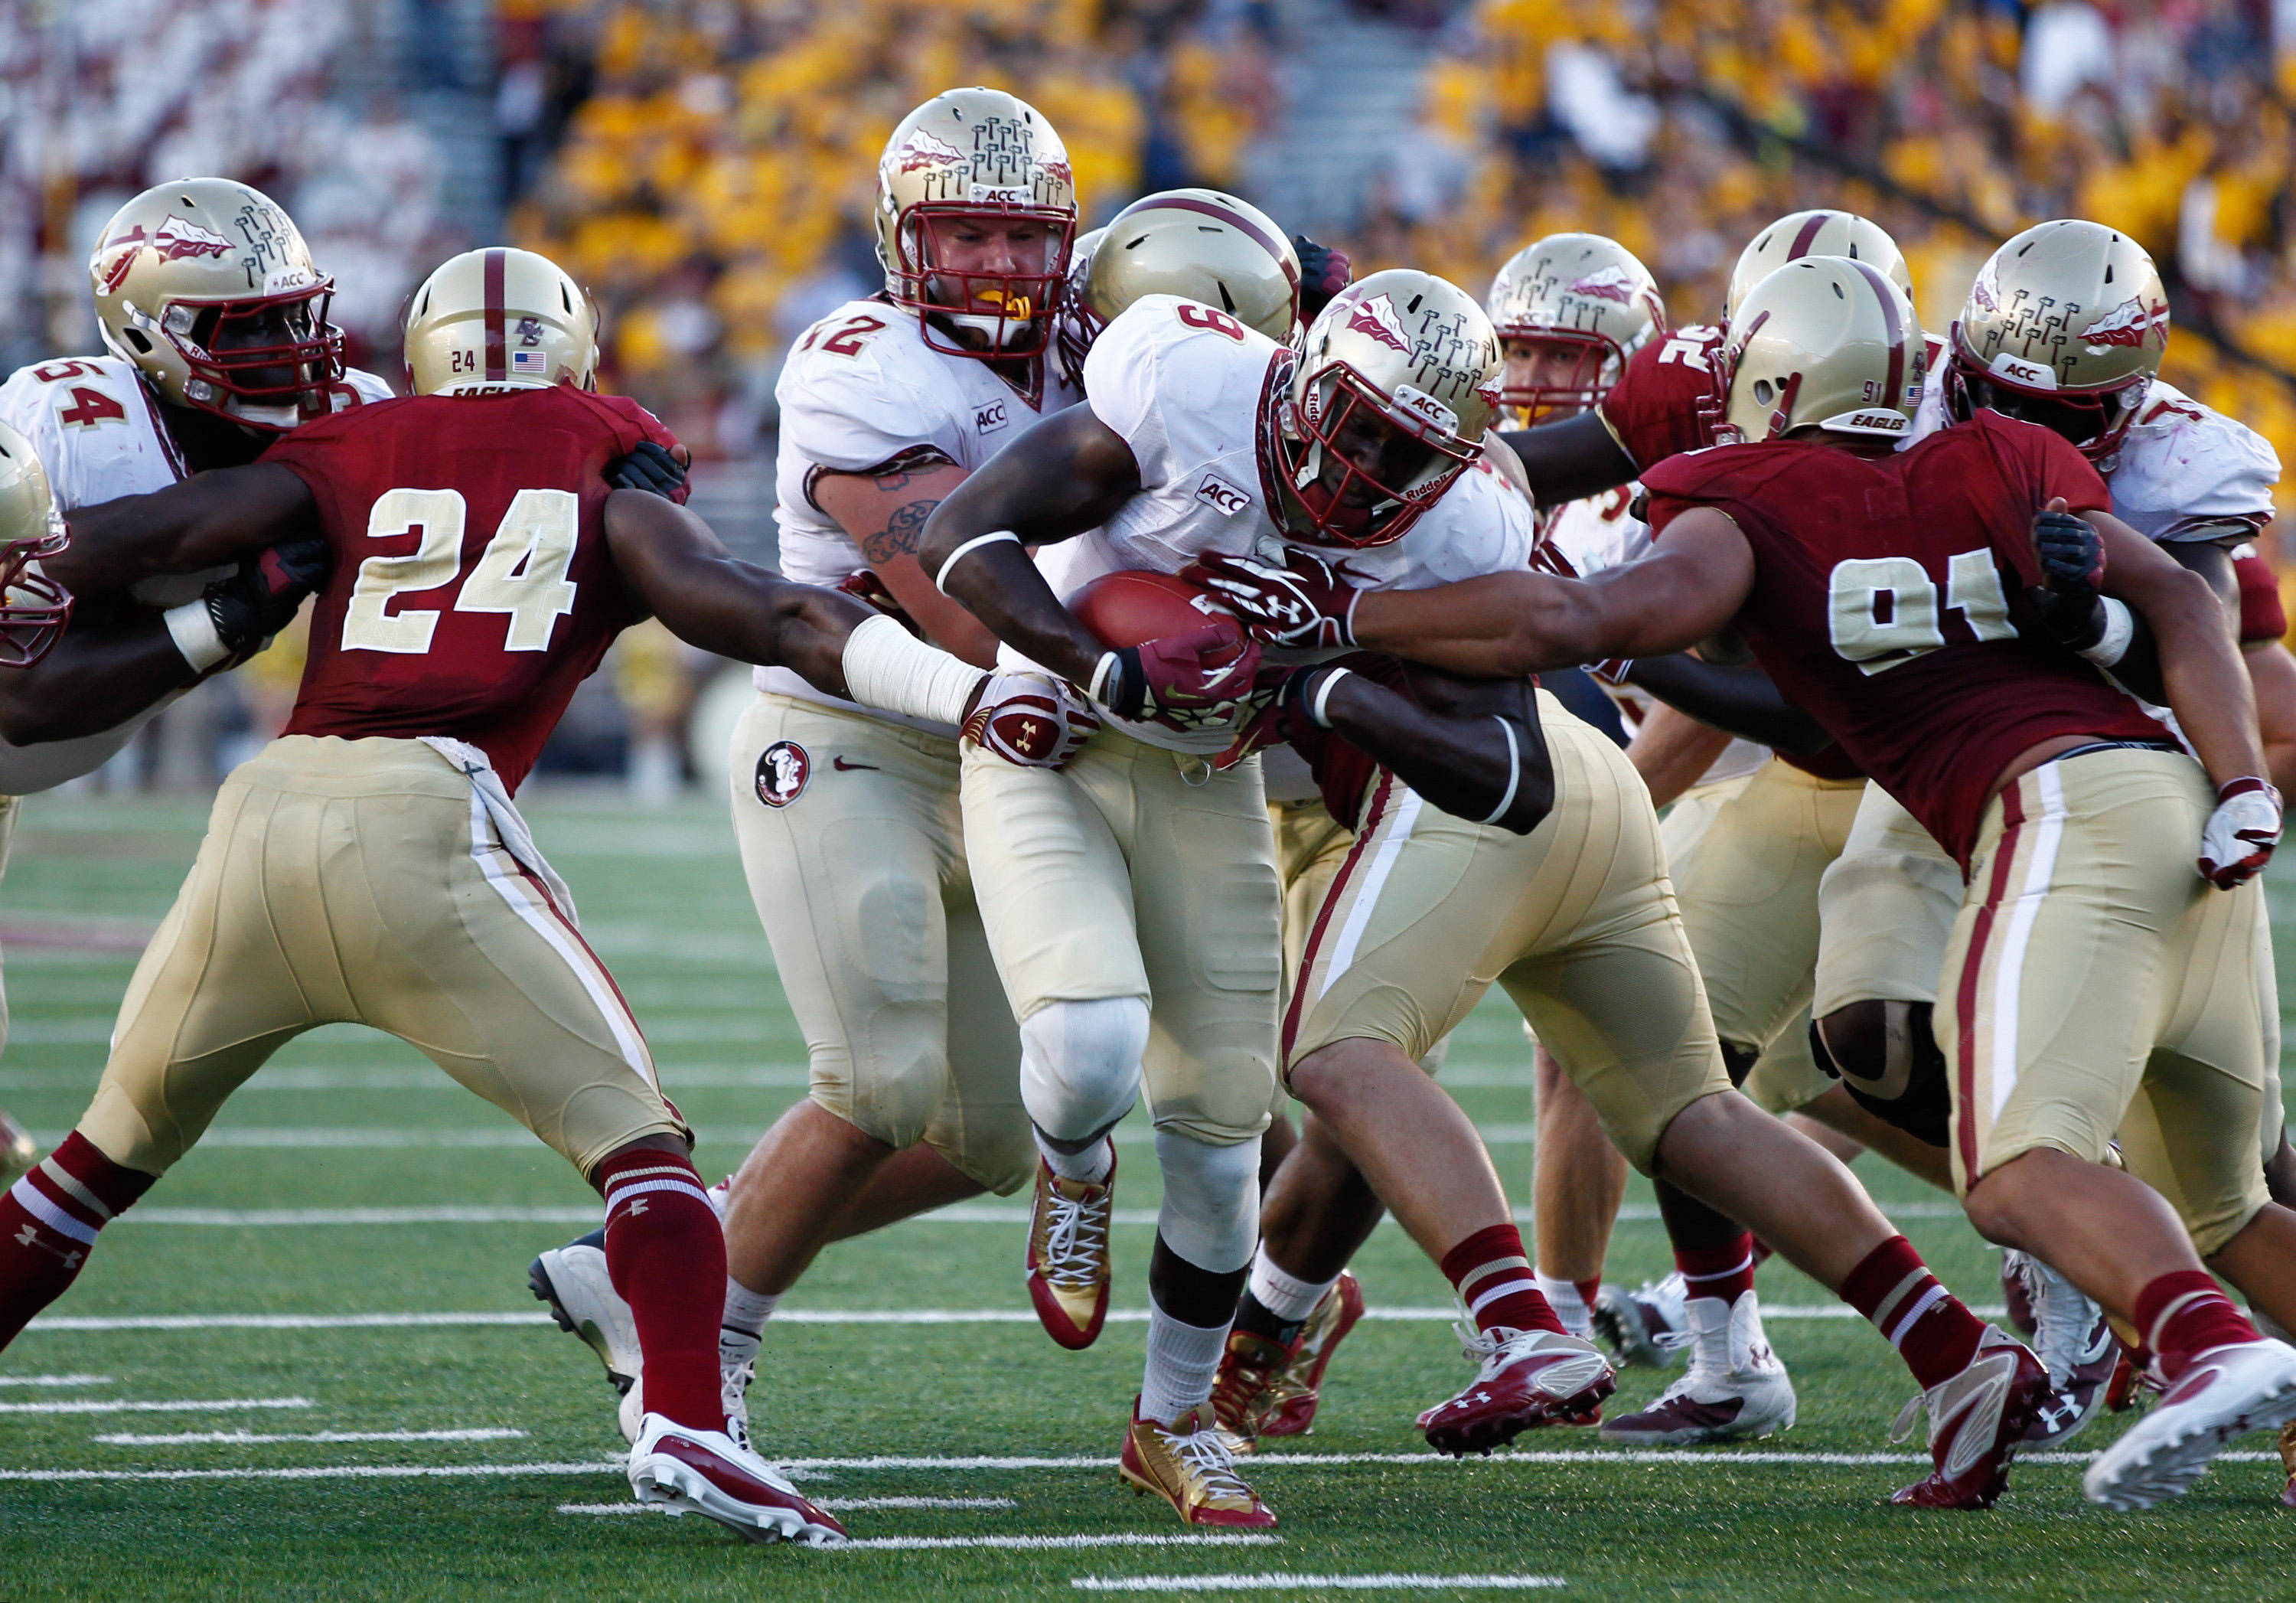 Karlos Williams (9) carries the ball. Mandatory Credit: Mark L. Baer-USA TODAY Sports